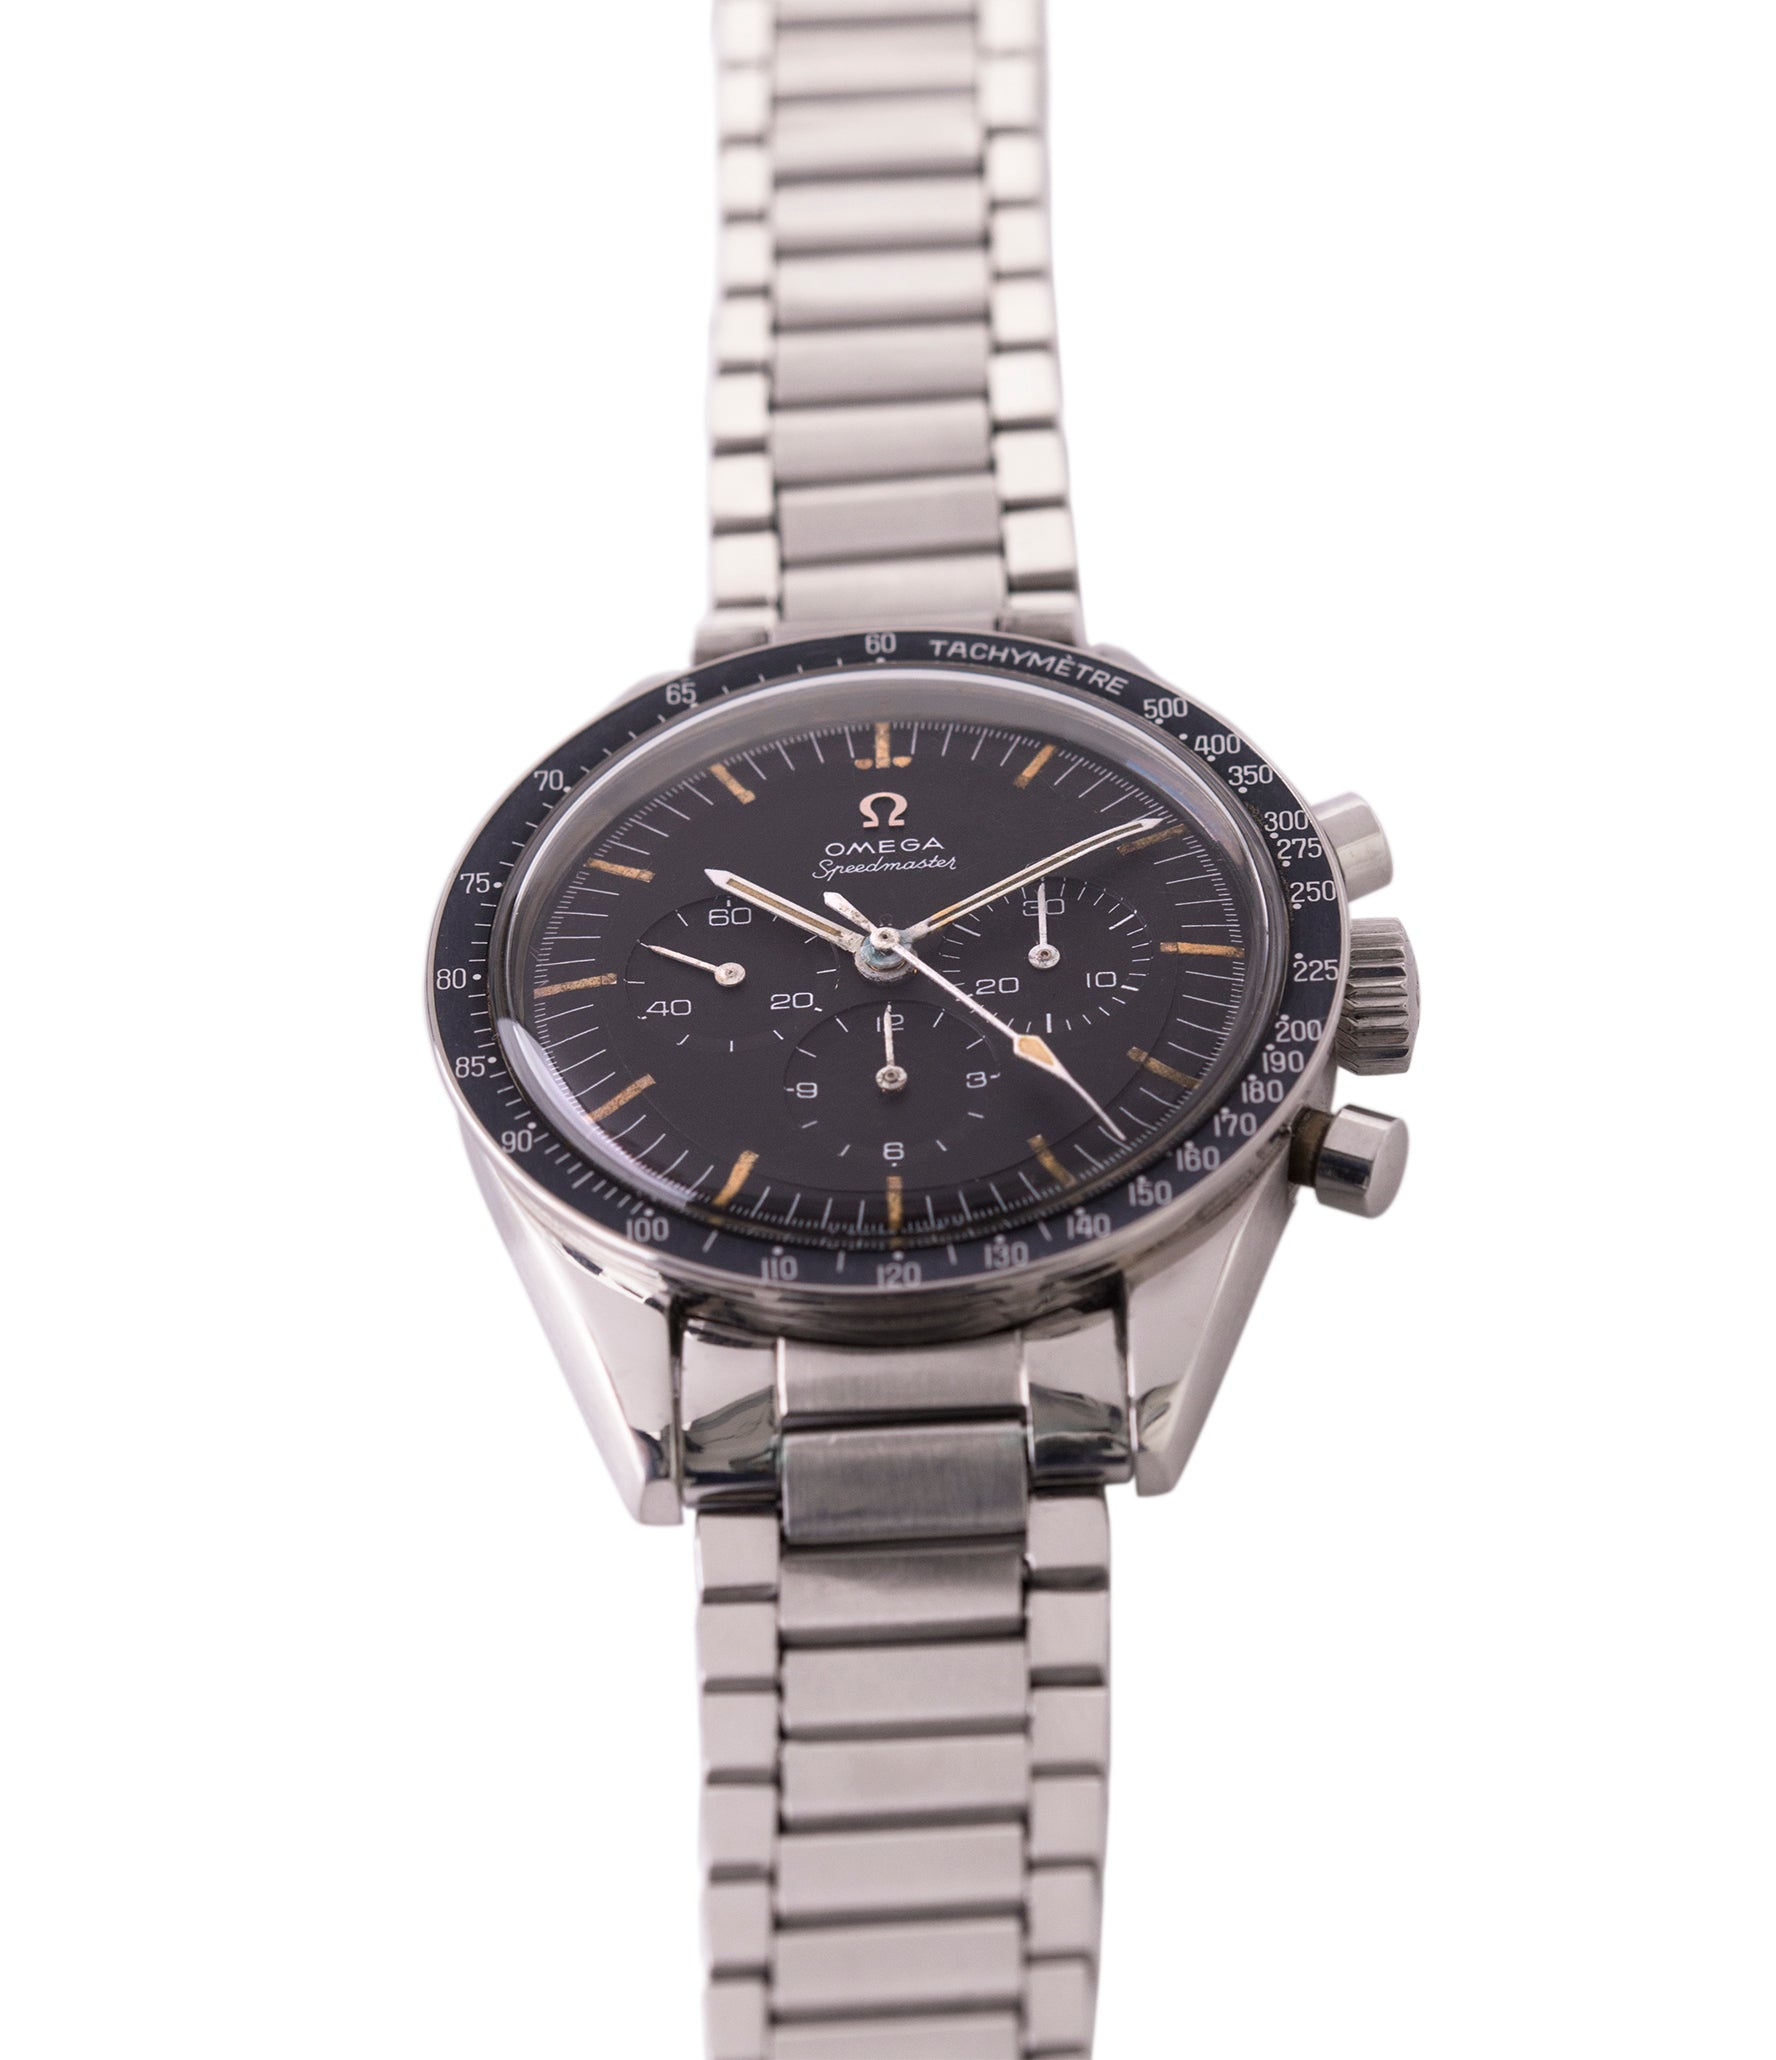 for sale vintage Omega Speedmaster Pre-Professional Ed White 105003 steel vintage chronograph 7912 flat-link bracelet for sale online at A Collected Man UK specialist of rare vintage watches